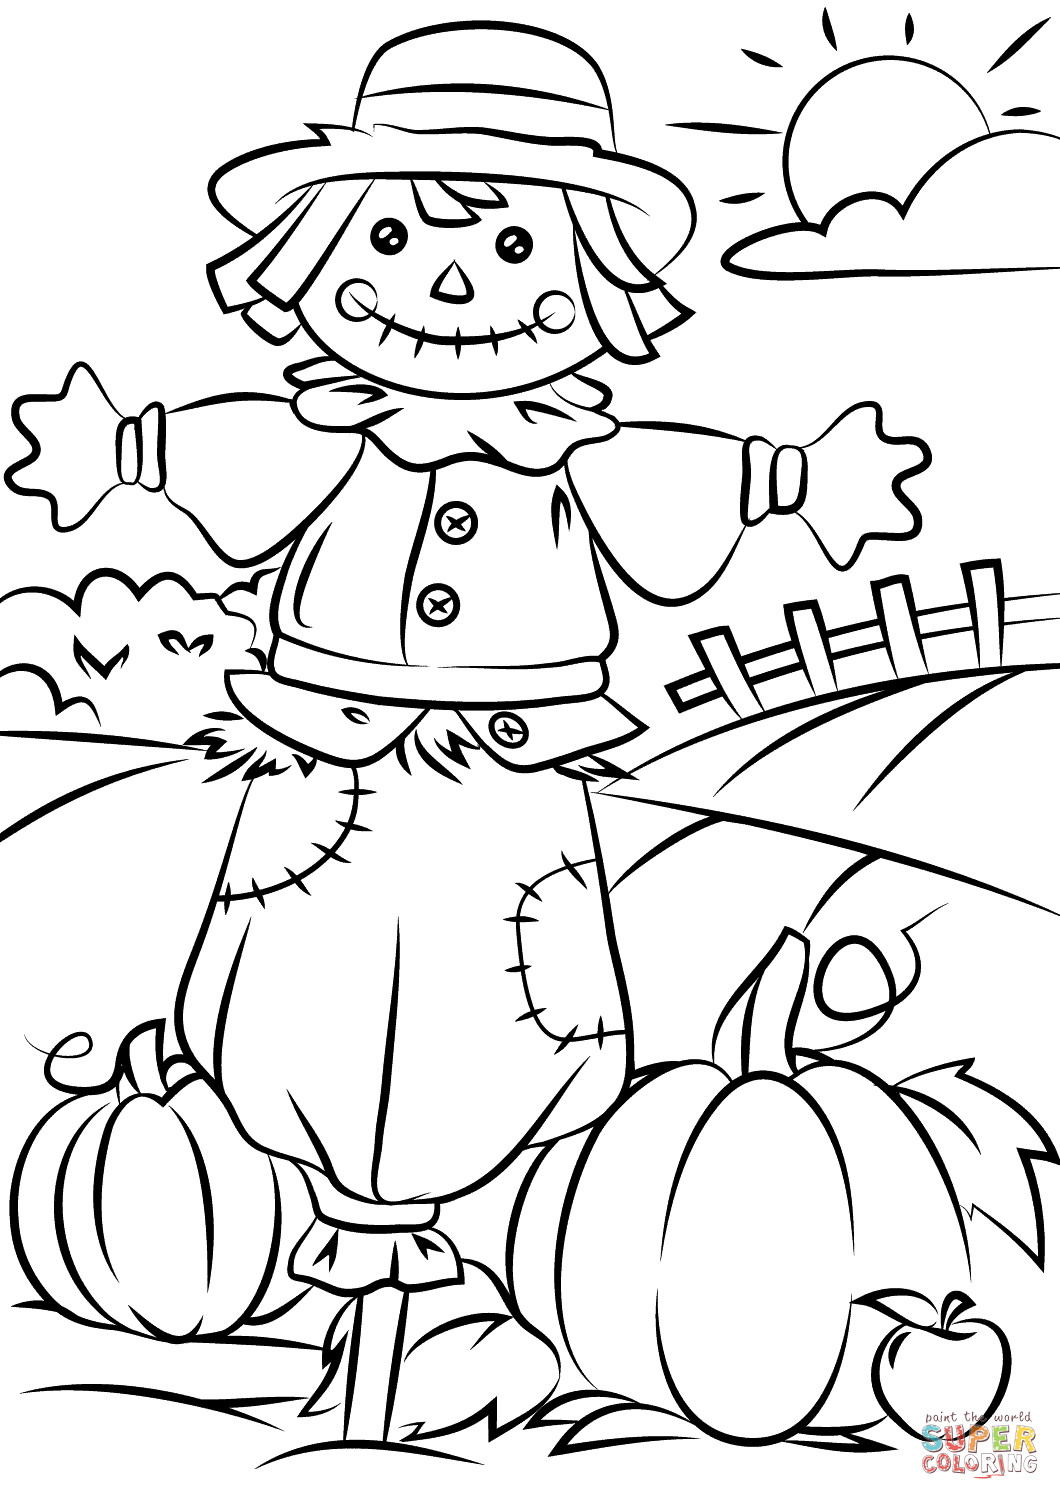 Best ideas about Free Coloring Pages Of Scarecrows . Save or Pin Free Scarecrow Coloring Pages Coloring Home Now.